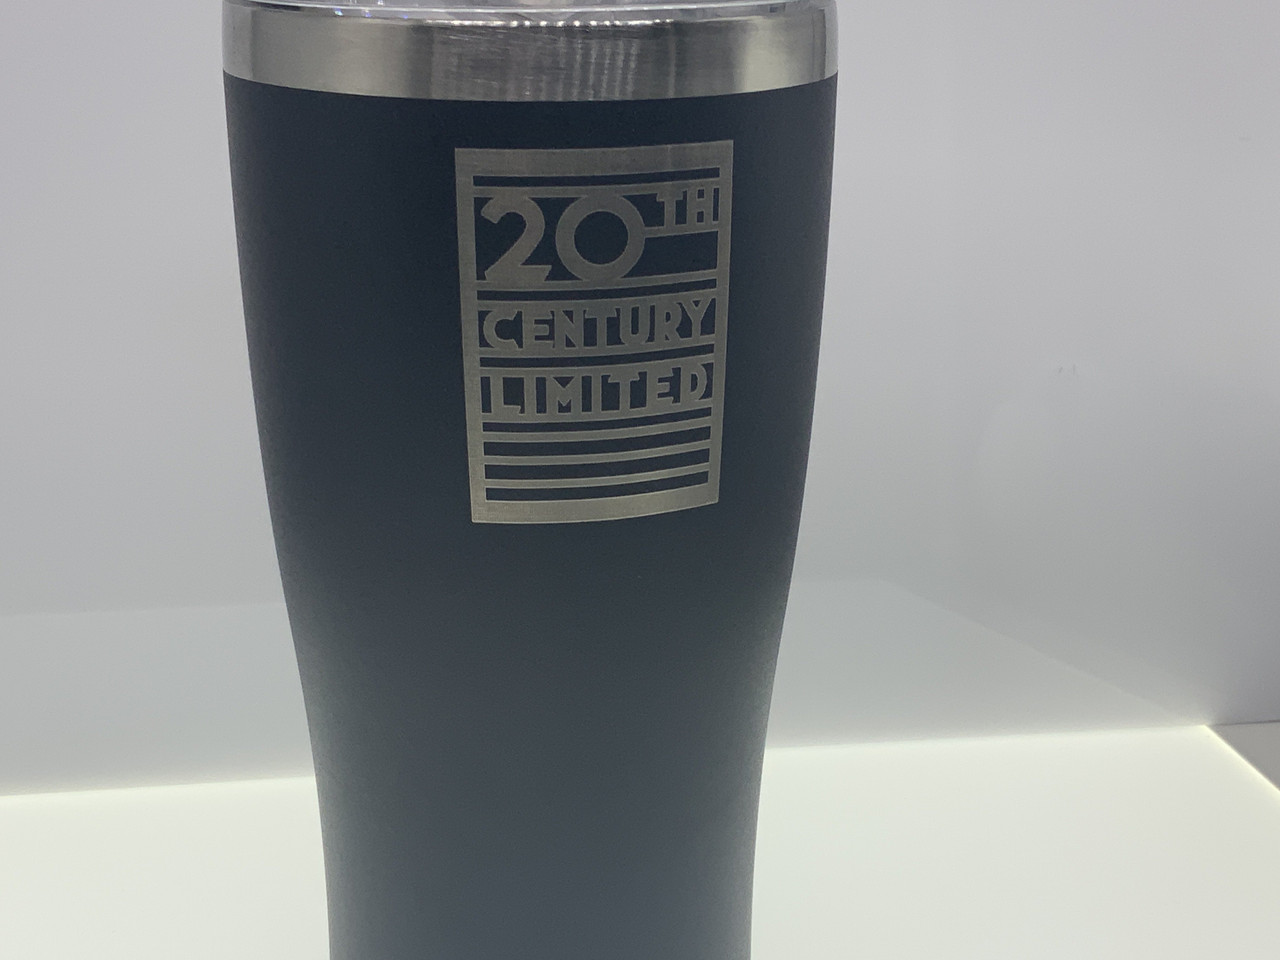 Stainless 20oz Tumbler NYC New York Central engraved for O HO scale modeler